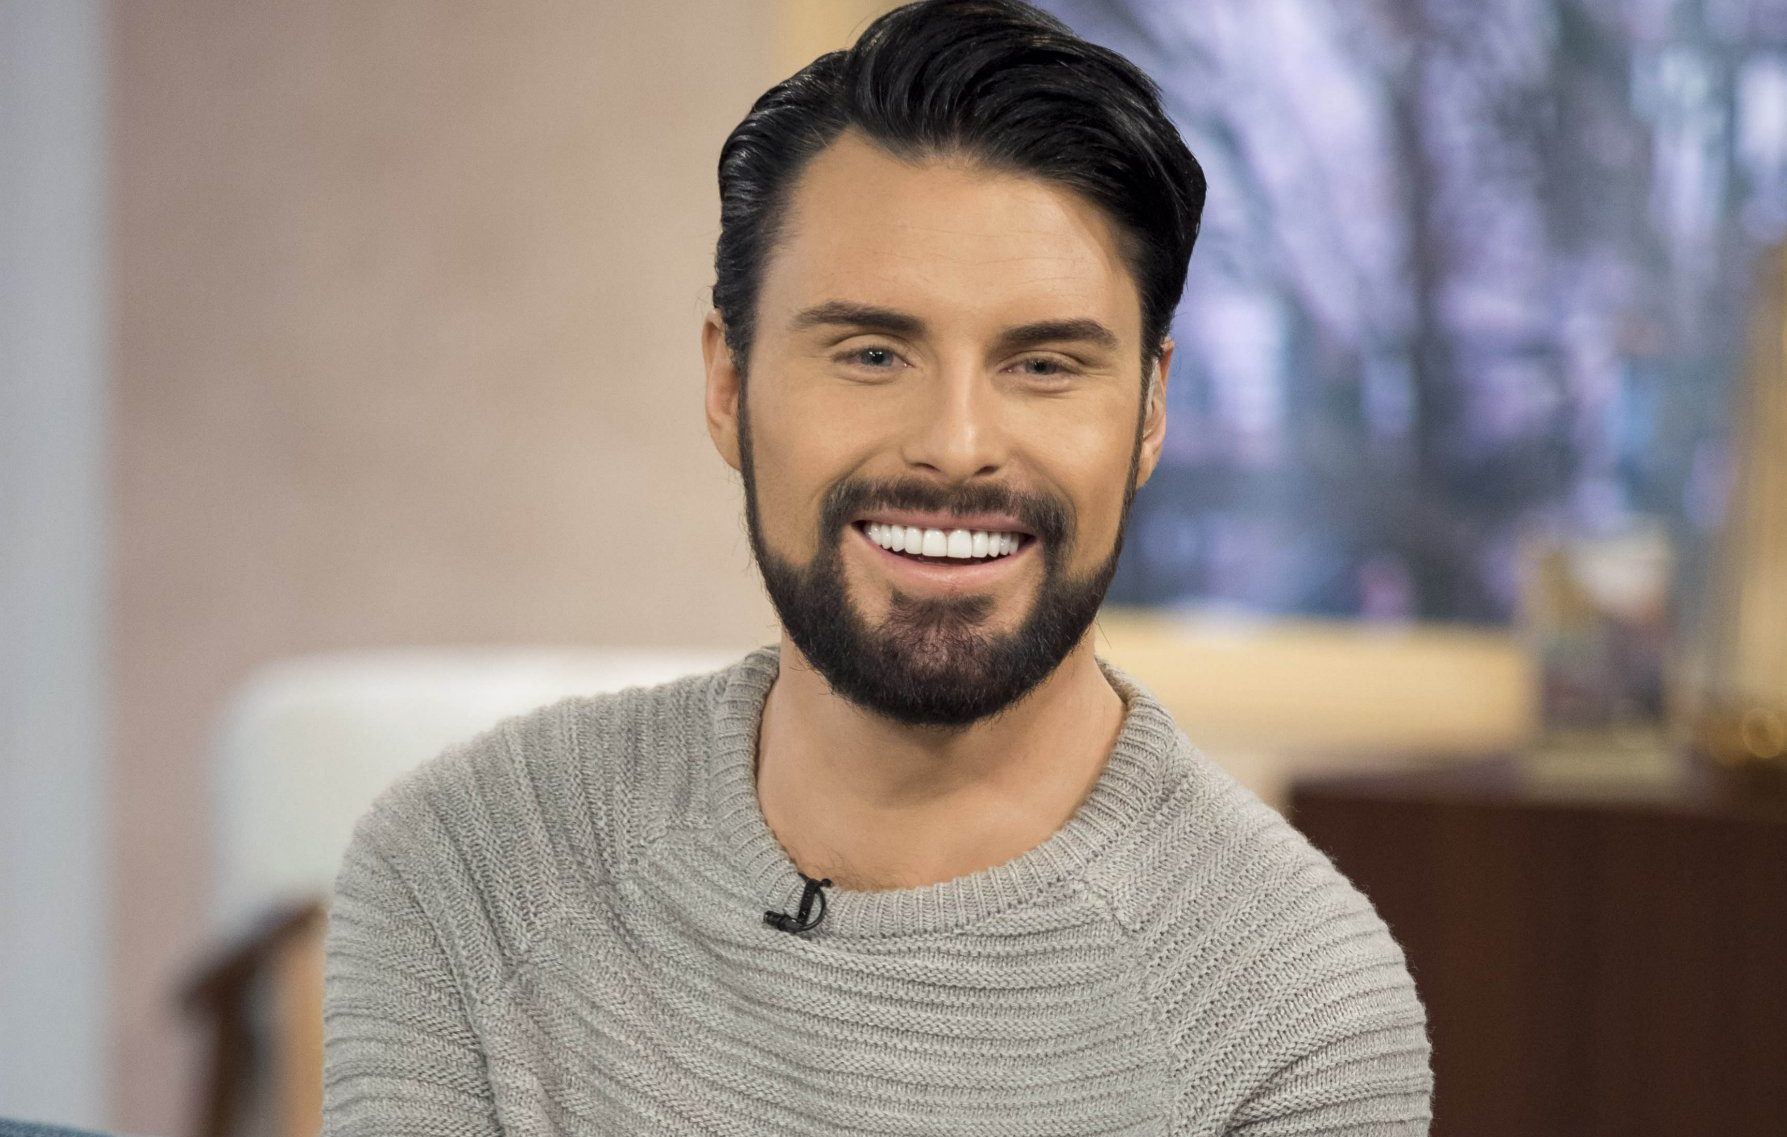 Rylan Clark-Neal gets his very own Barbie – but where are his teeth?